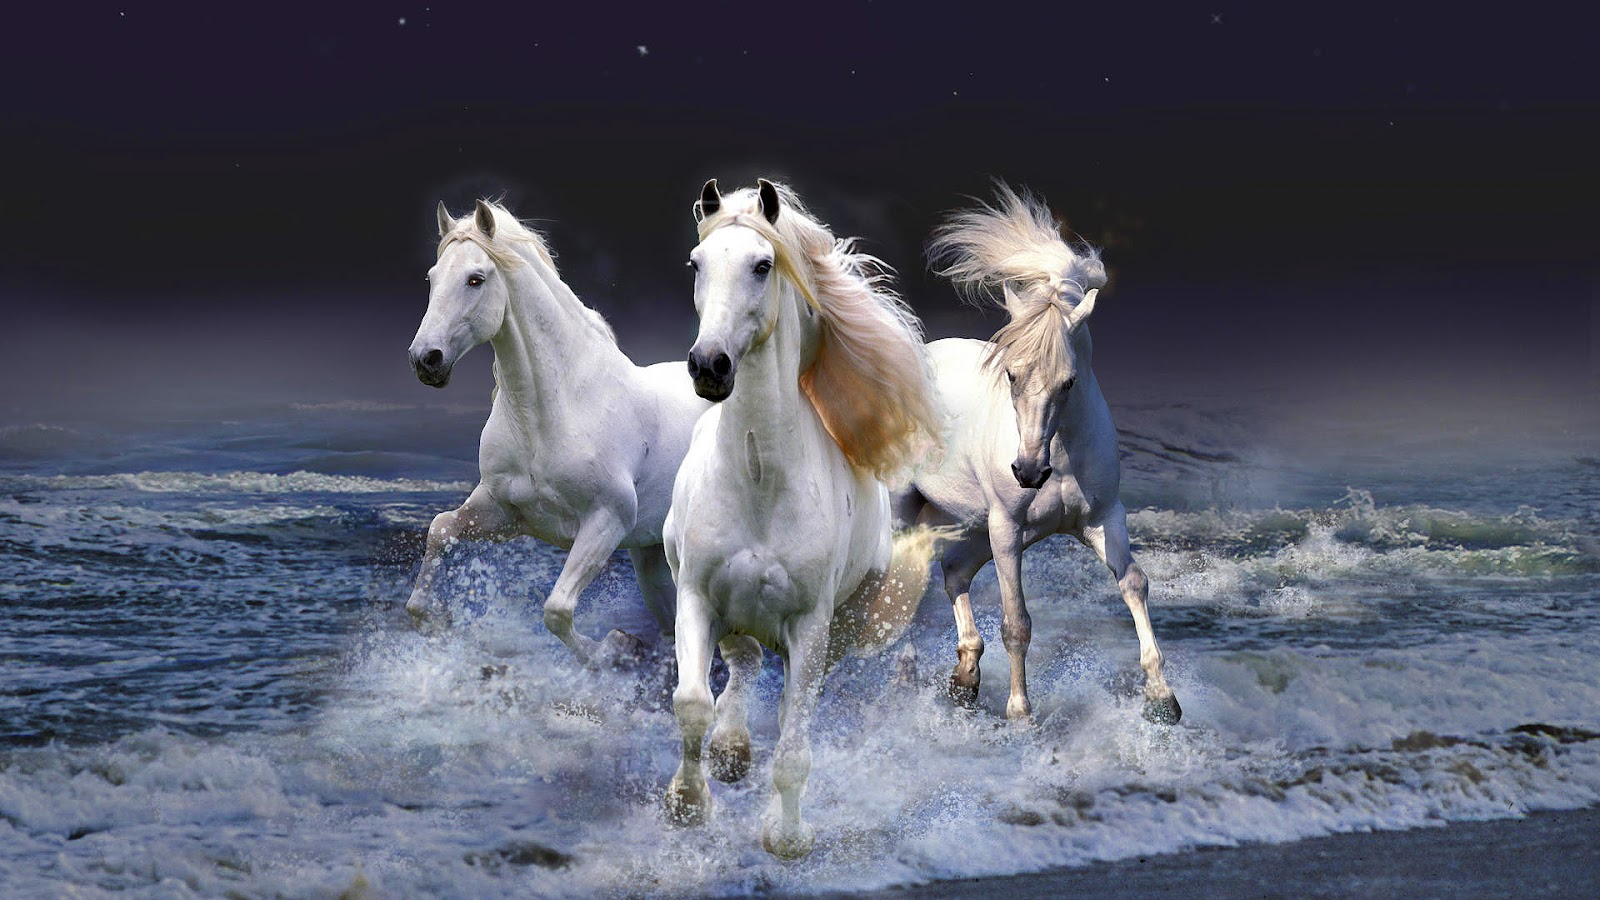 Running Horses Wallpaper - WallpaperSafari - photo#27